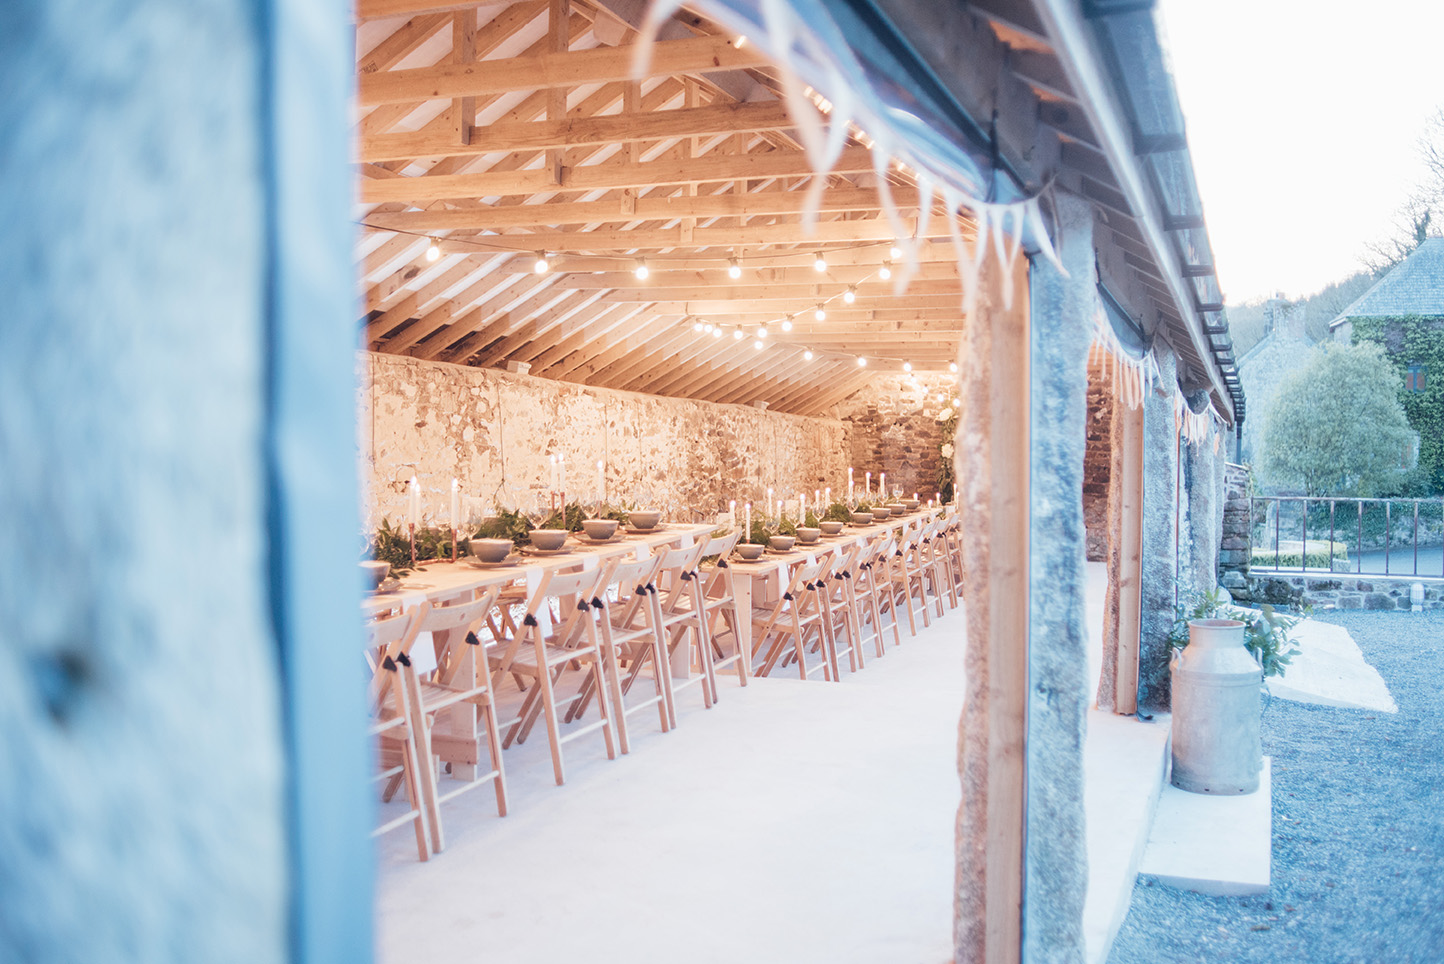 The inside of the Cowyard Barn rustic party and reception space set for an evening dinner at Pengenna Manor Cornwall wedding venue01.jpg